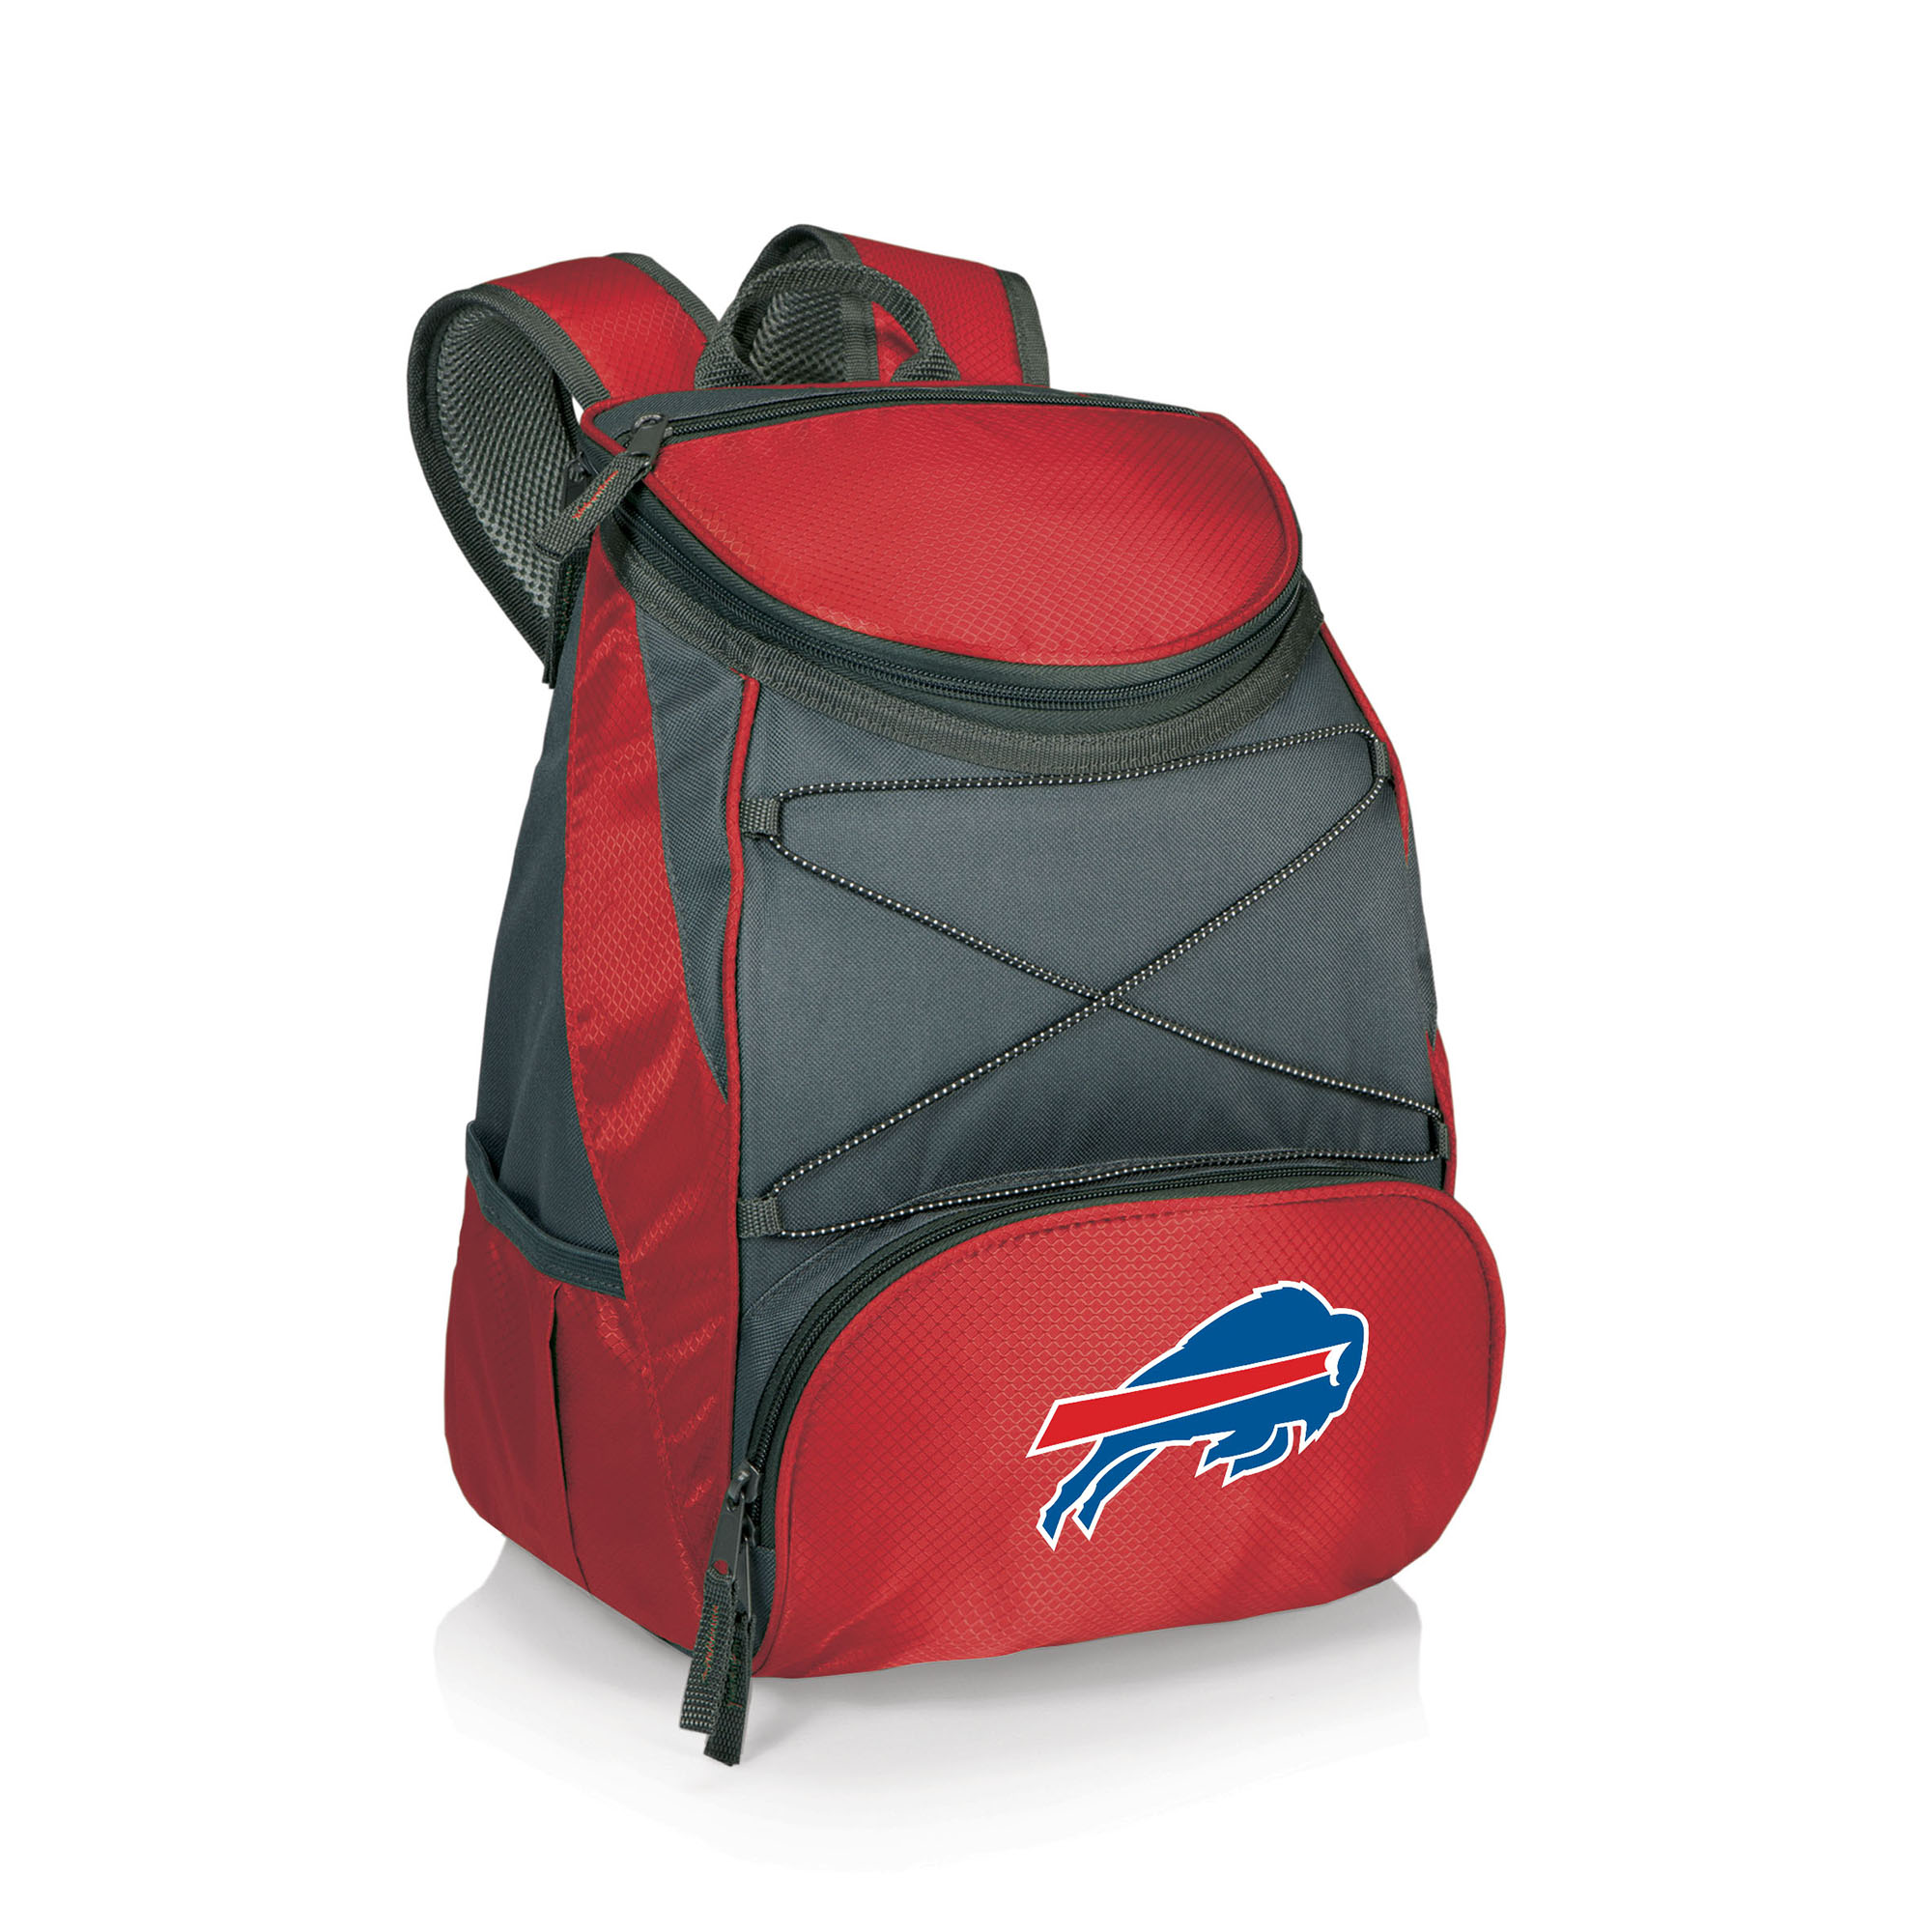 Buffalo Bills PTX Backpack Cooler - Red - No Size